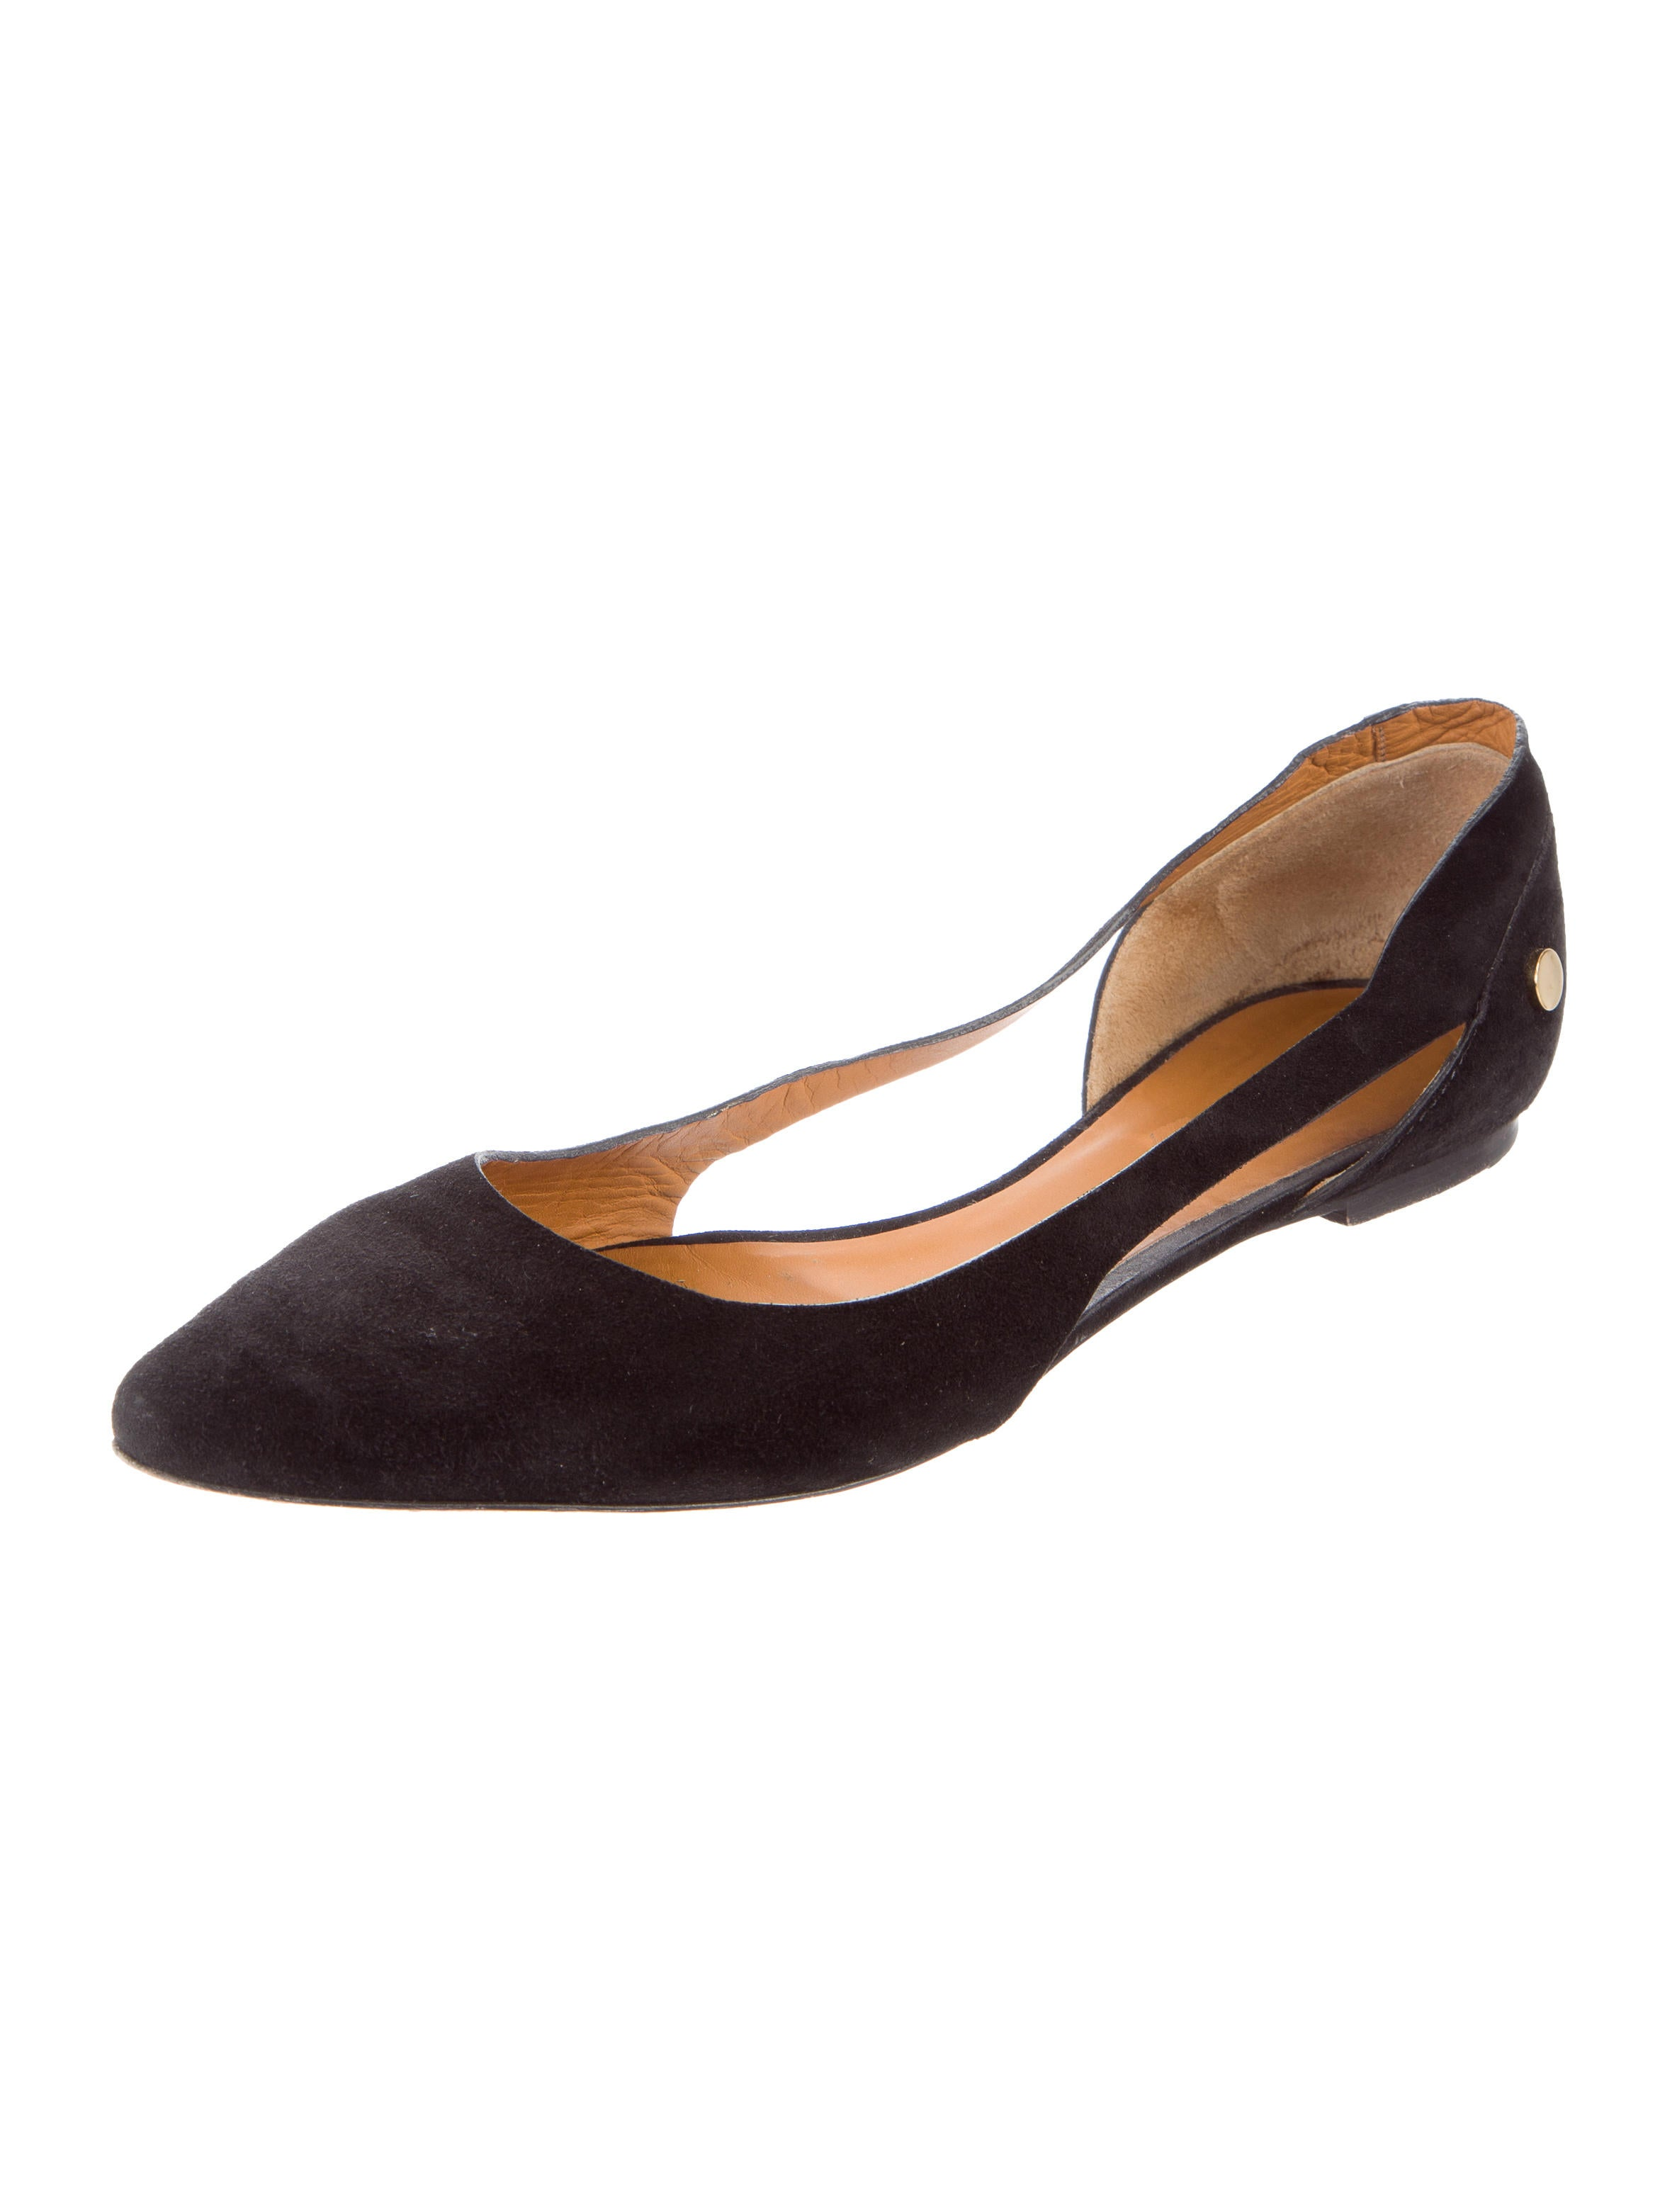 Chlo 233 Suede Pointed Toe Flats Shoes Chl53770 The